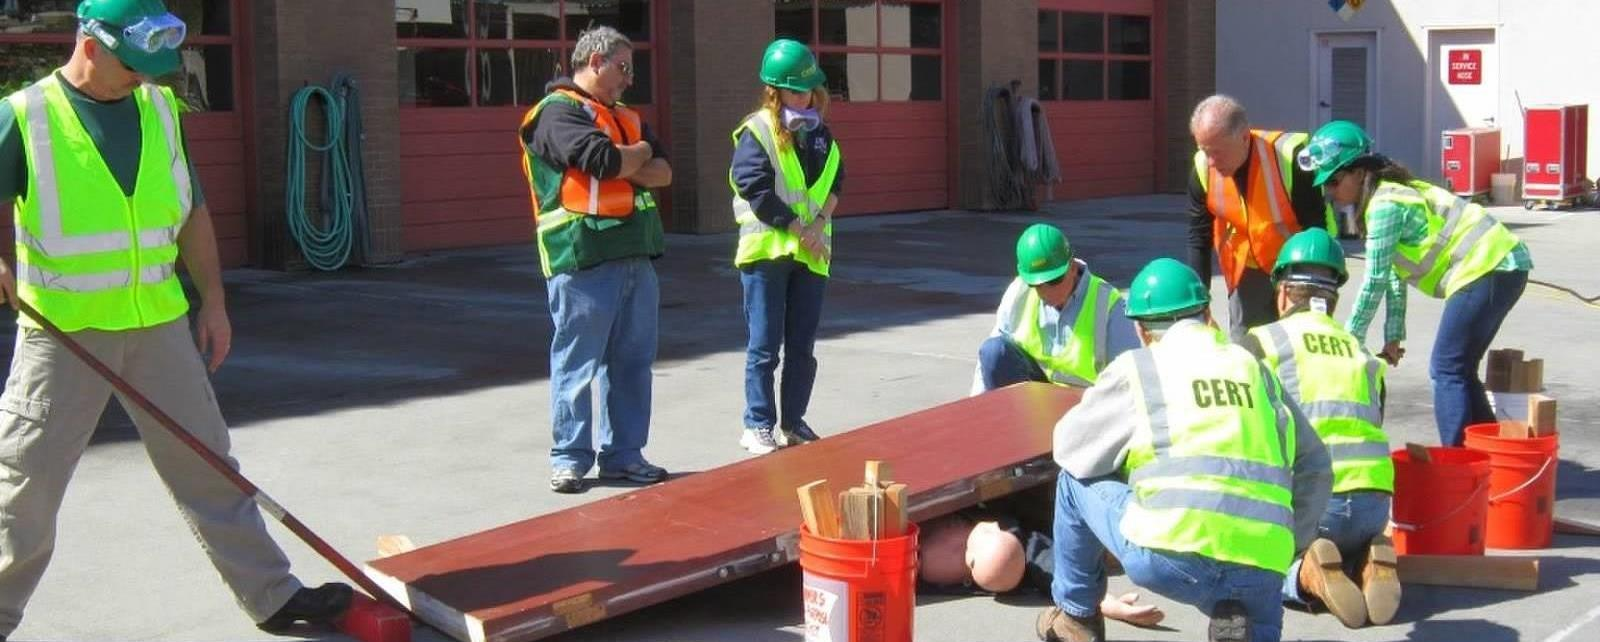 CERT_Redwood_City_Cribbing_001